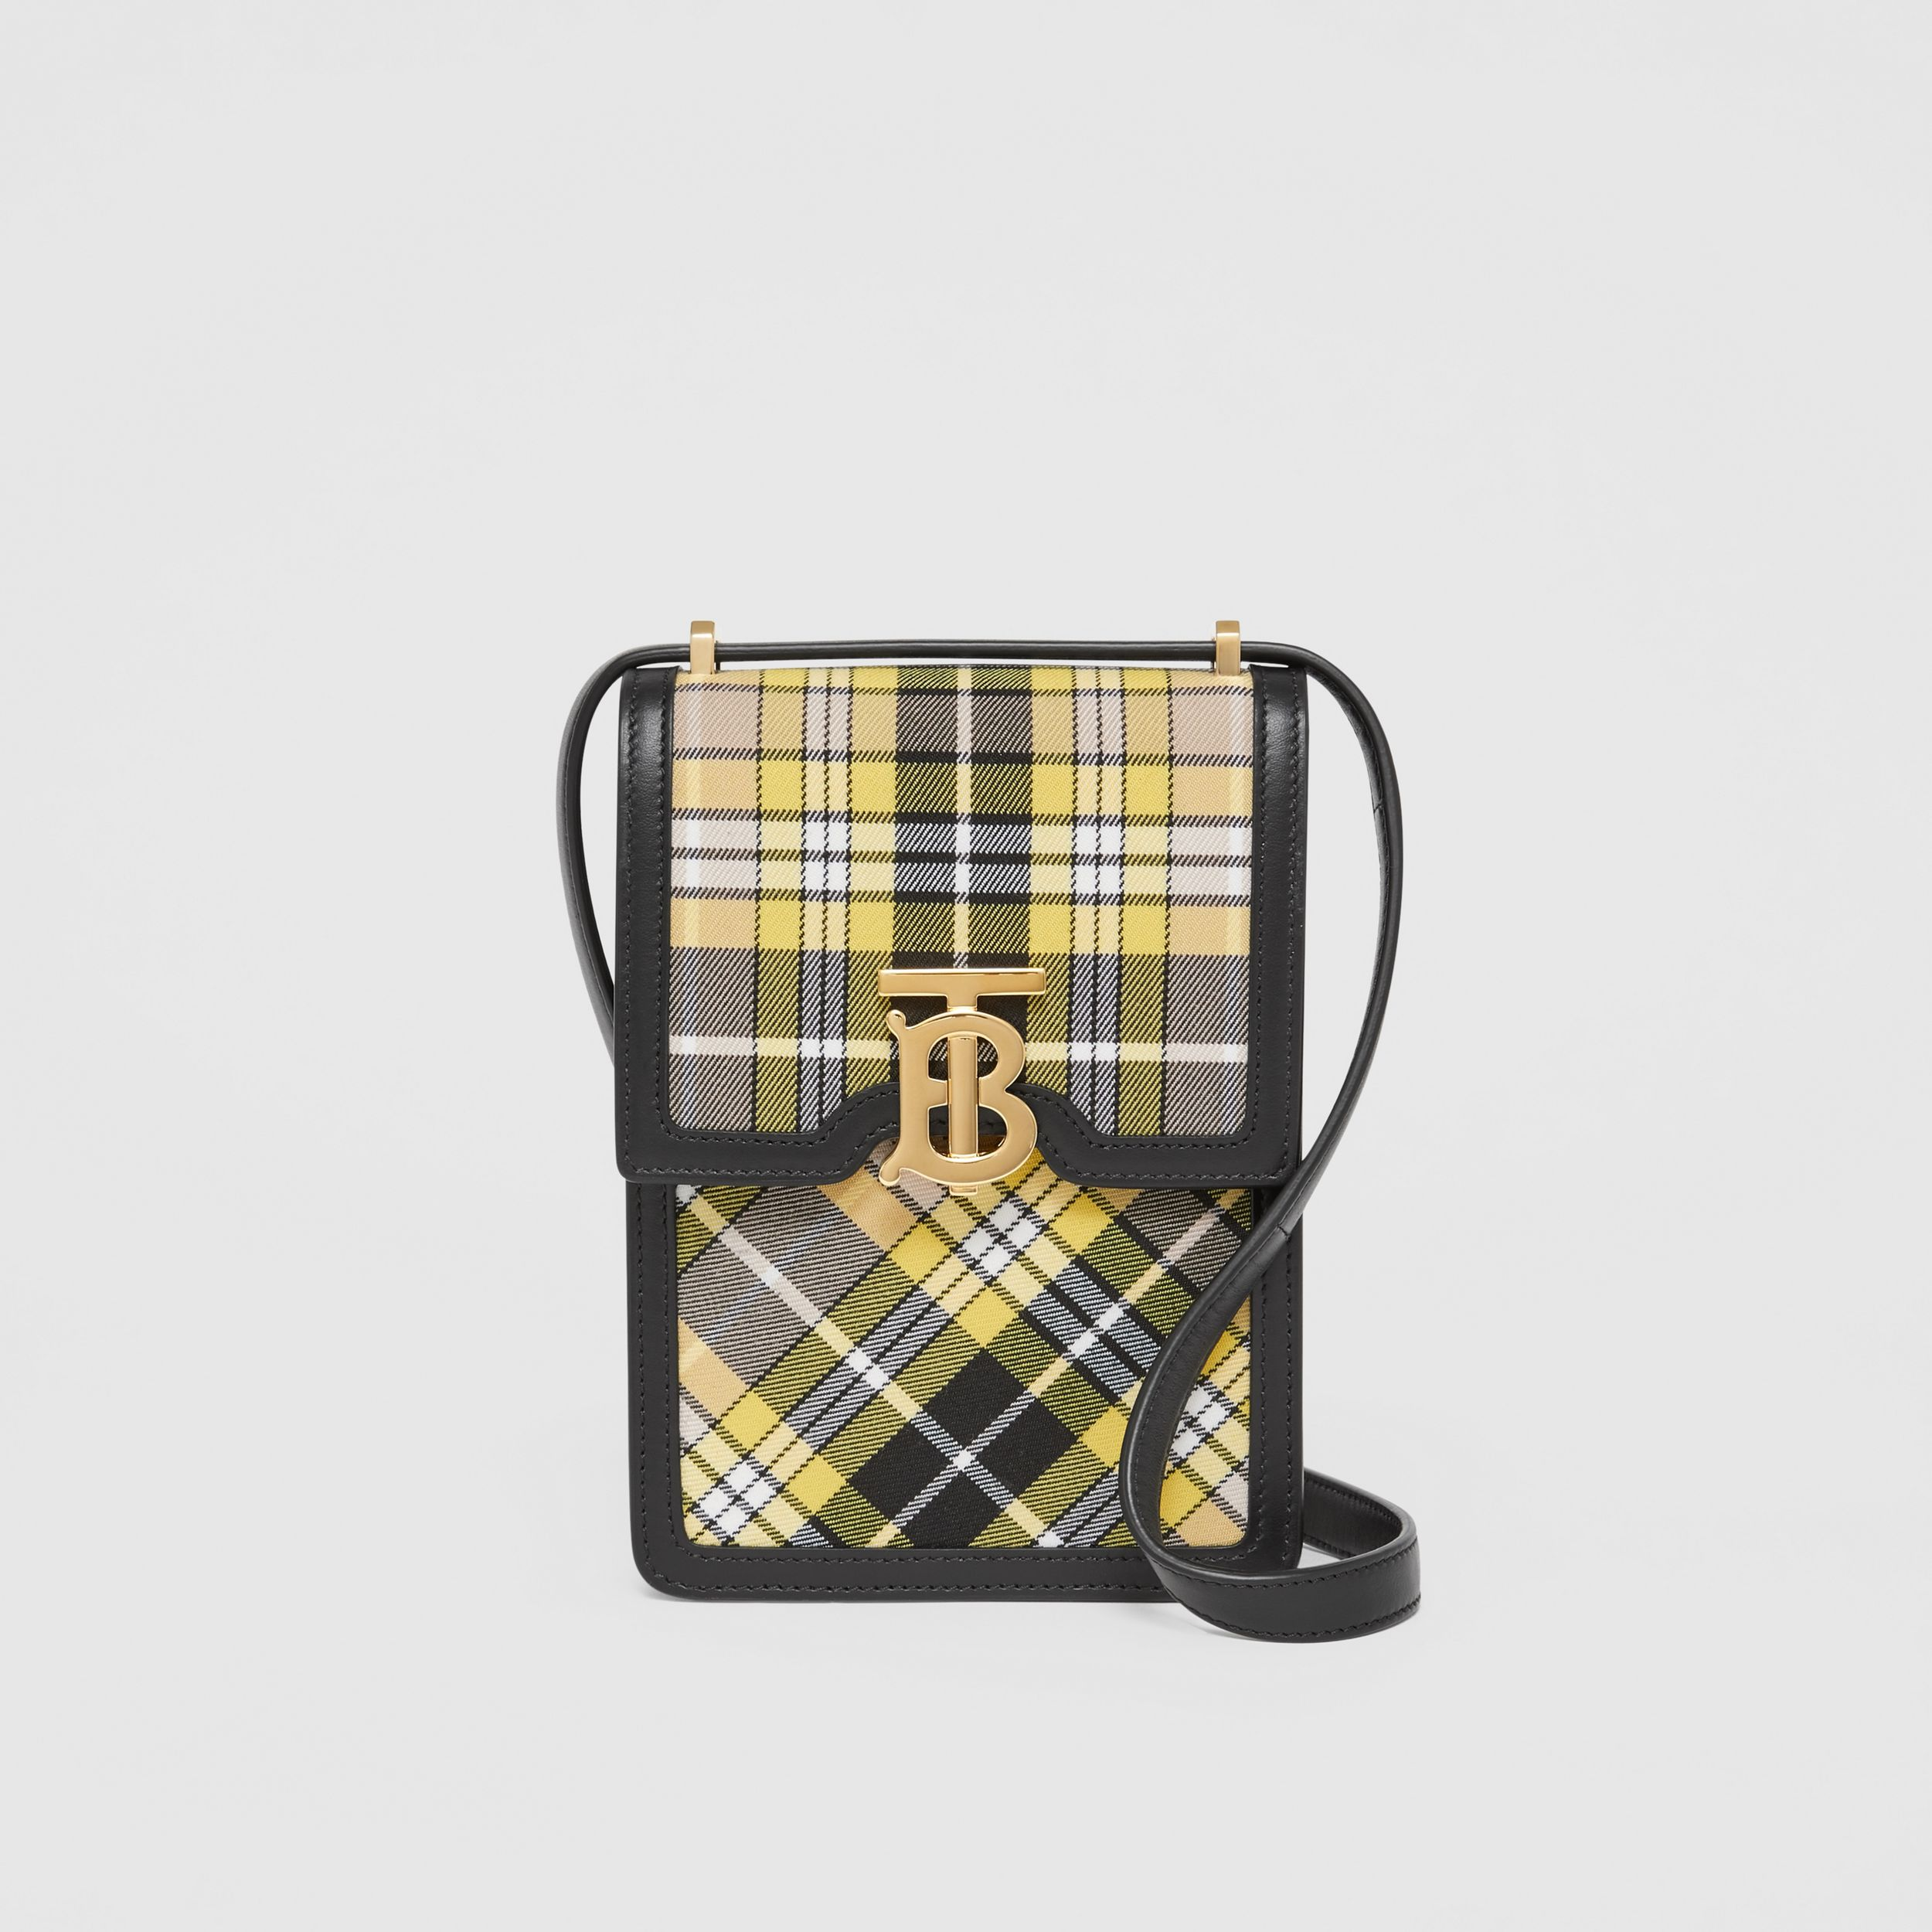 Tartan Cotton and Leather Robin Bag in Marigold Yellow - Women | Burberry - 1